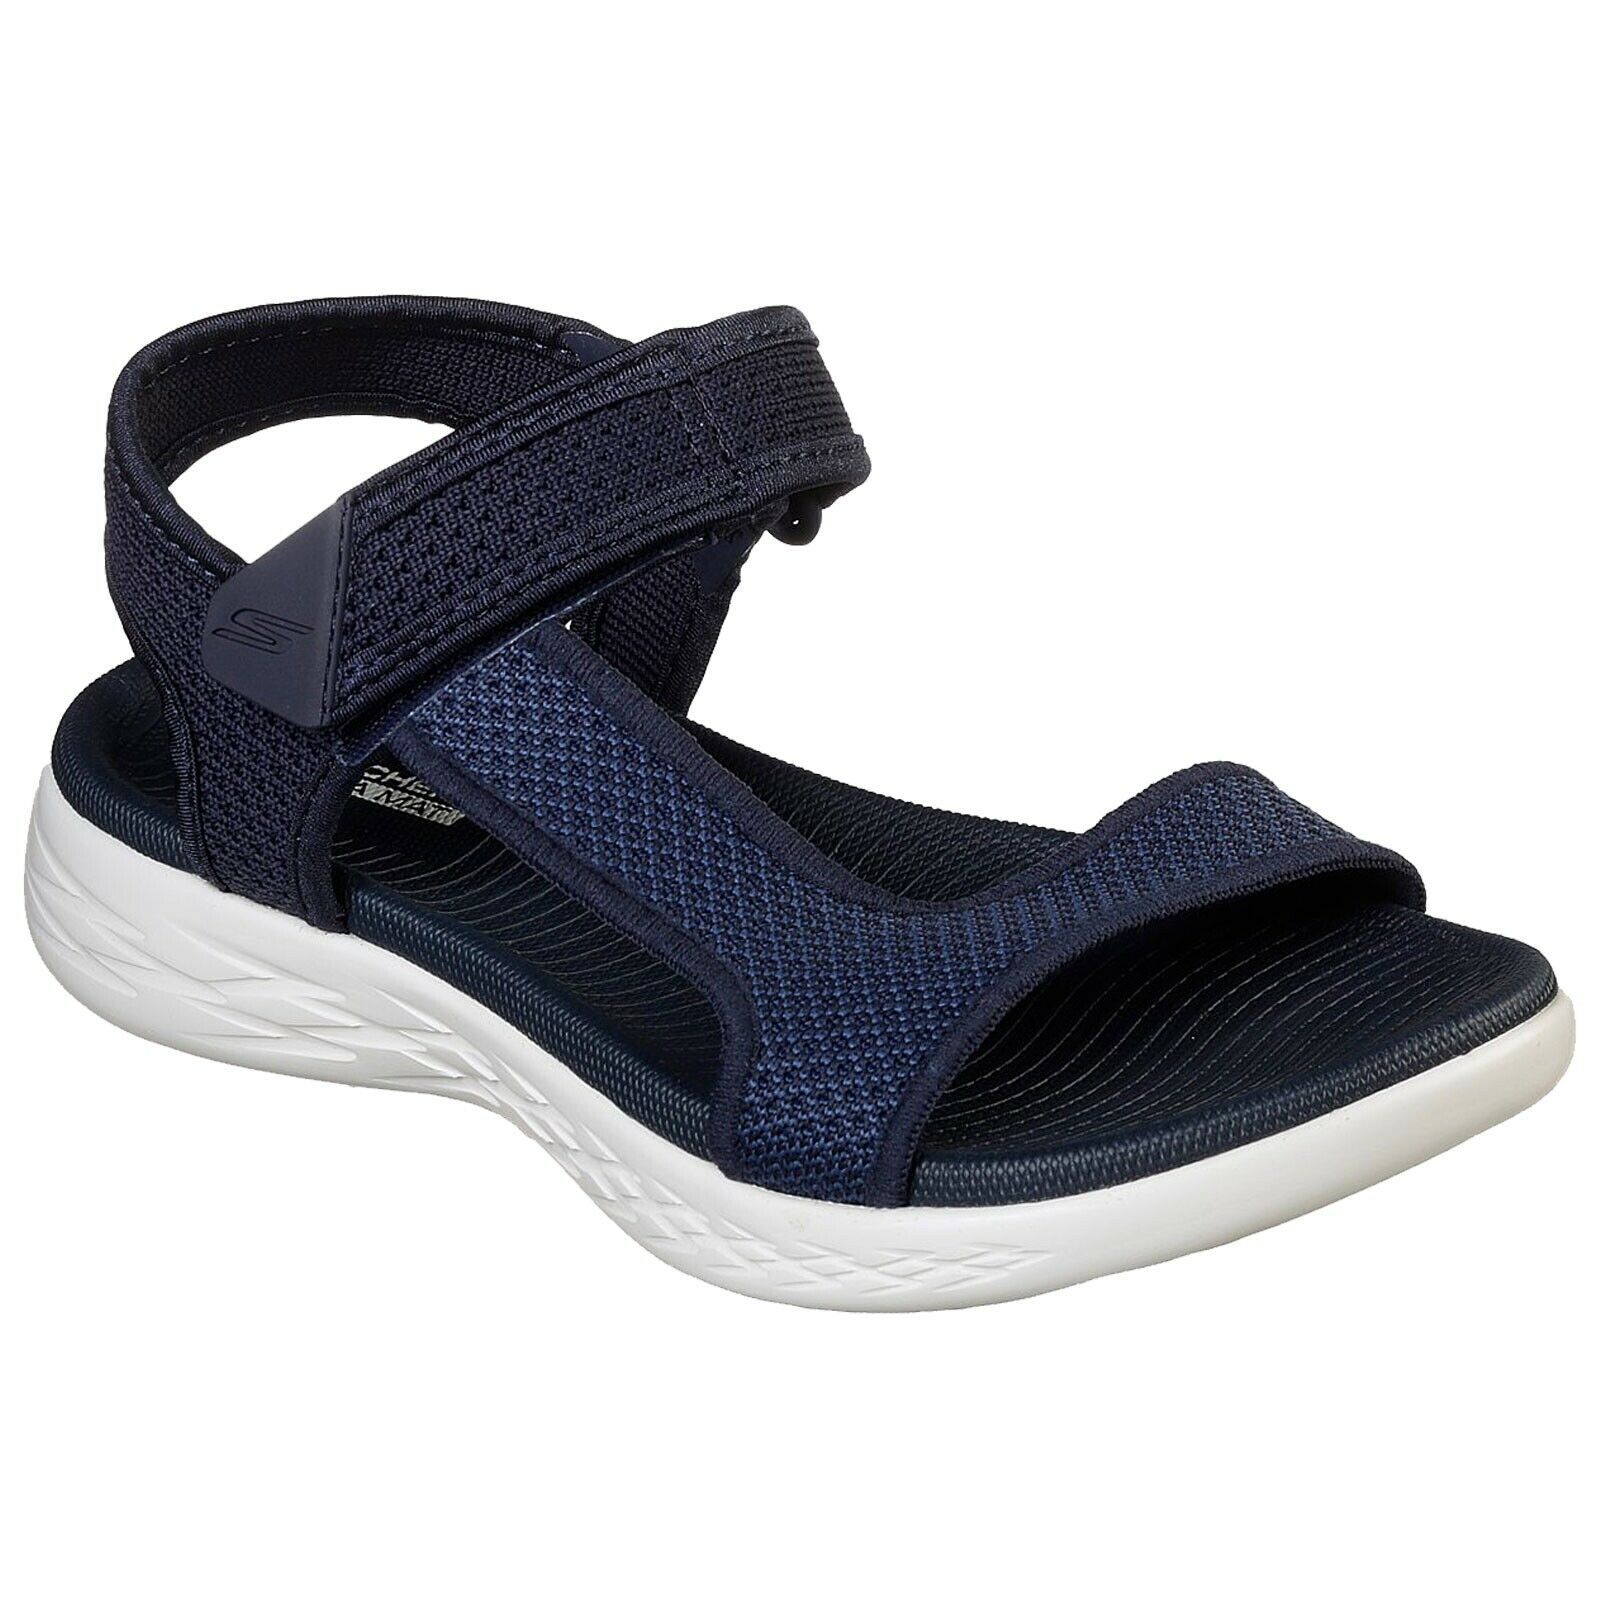 Details about LADIES SKECHERS ON THE GO 600 RUBIX NAVYWHITE STRAPPY SANDALS 16176NVW